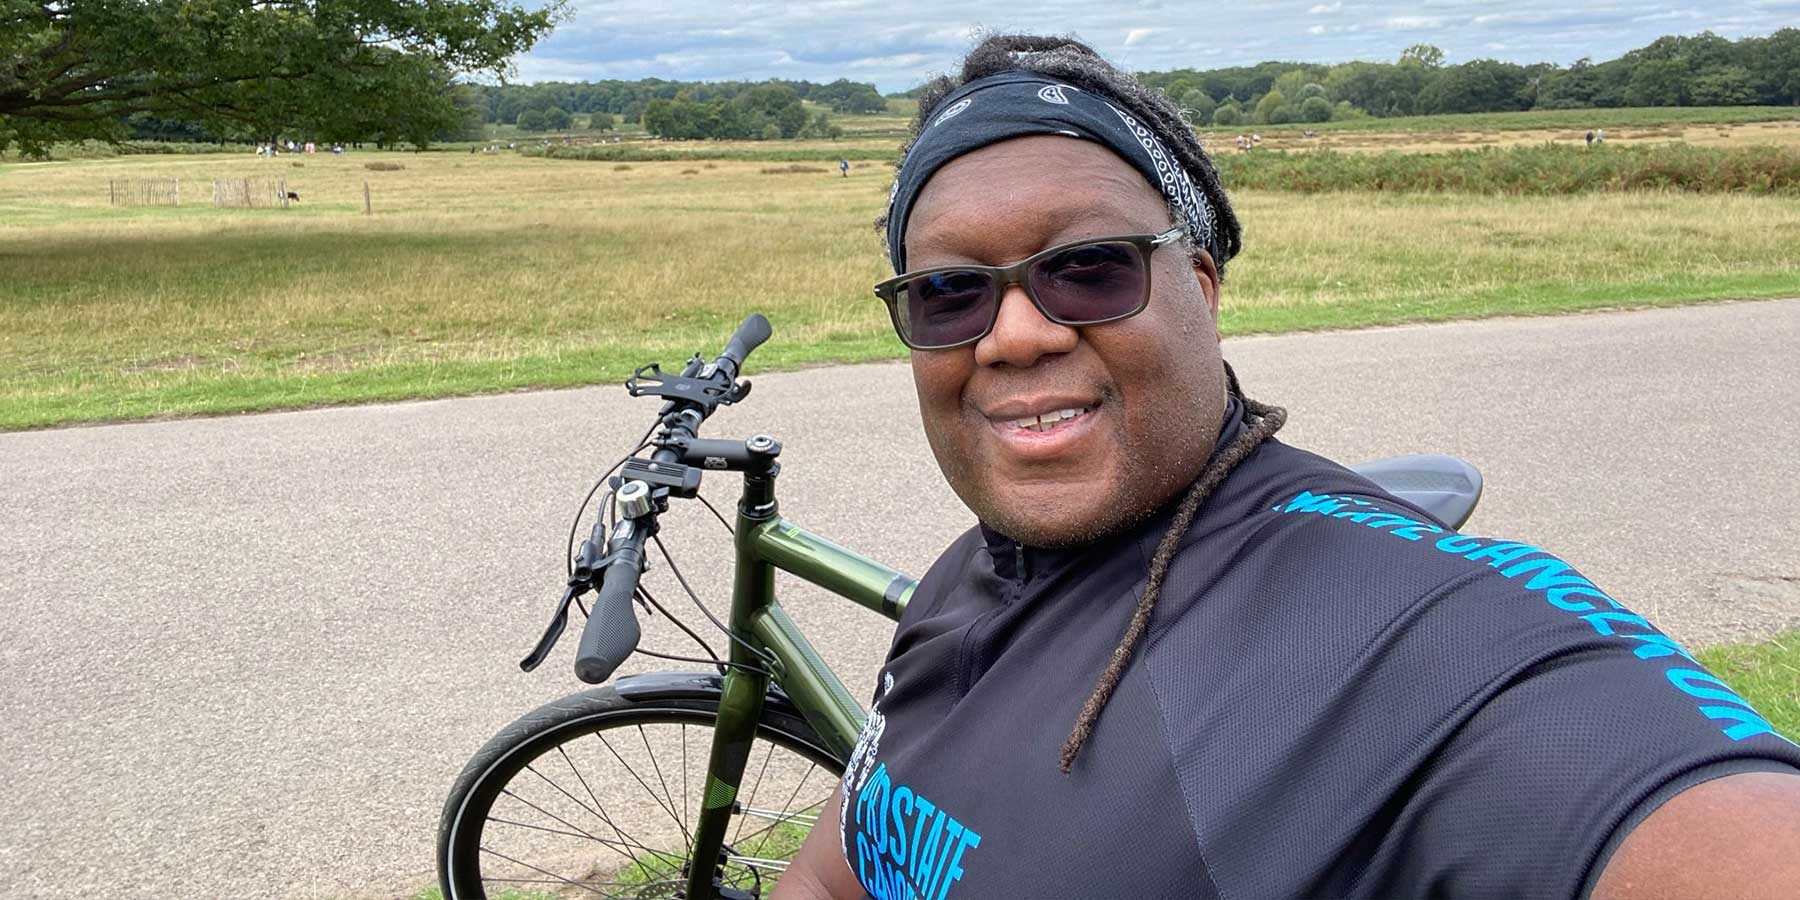 Man smiling taking a selfie in his cycling jersey with his bike in a field